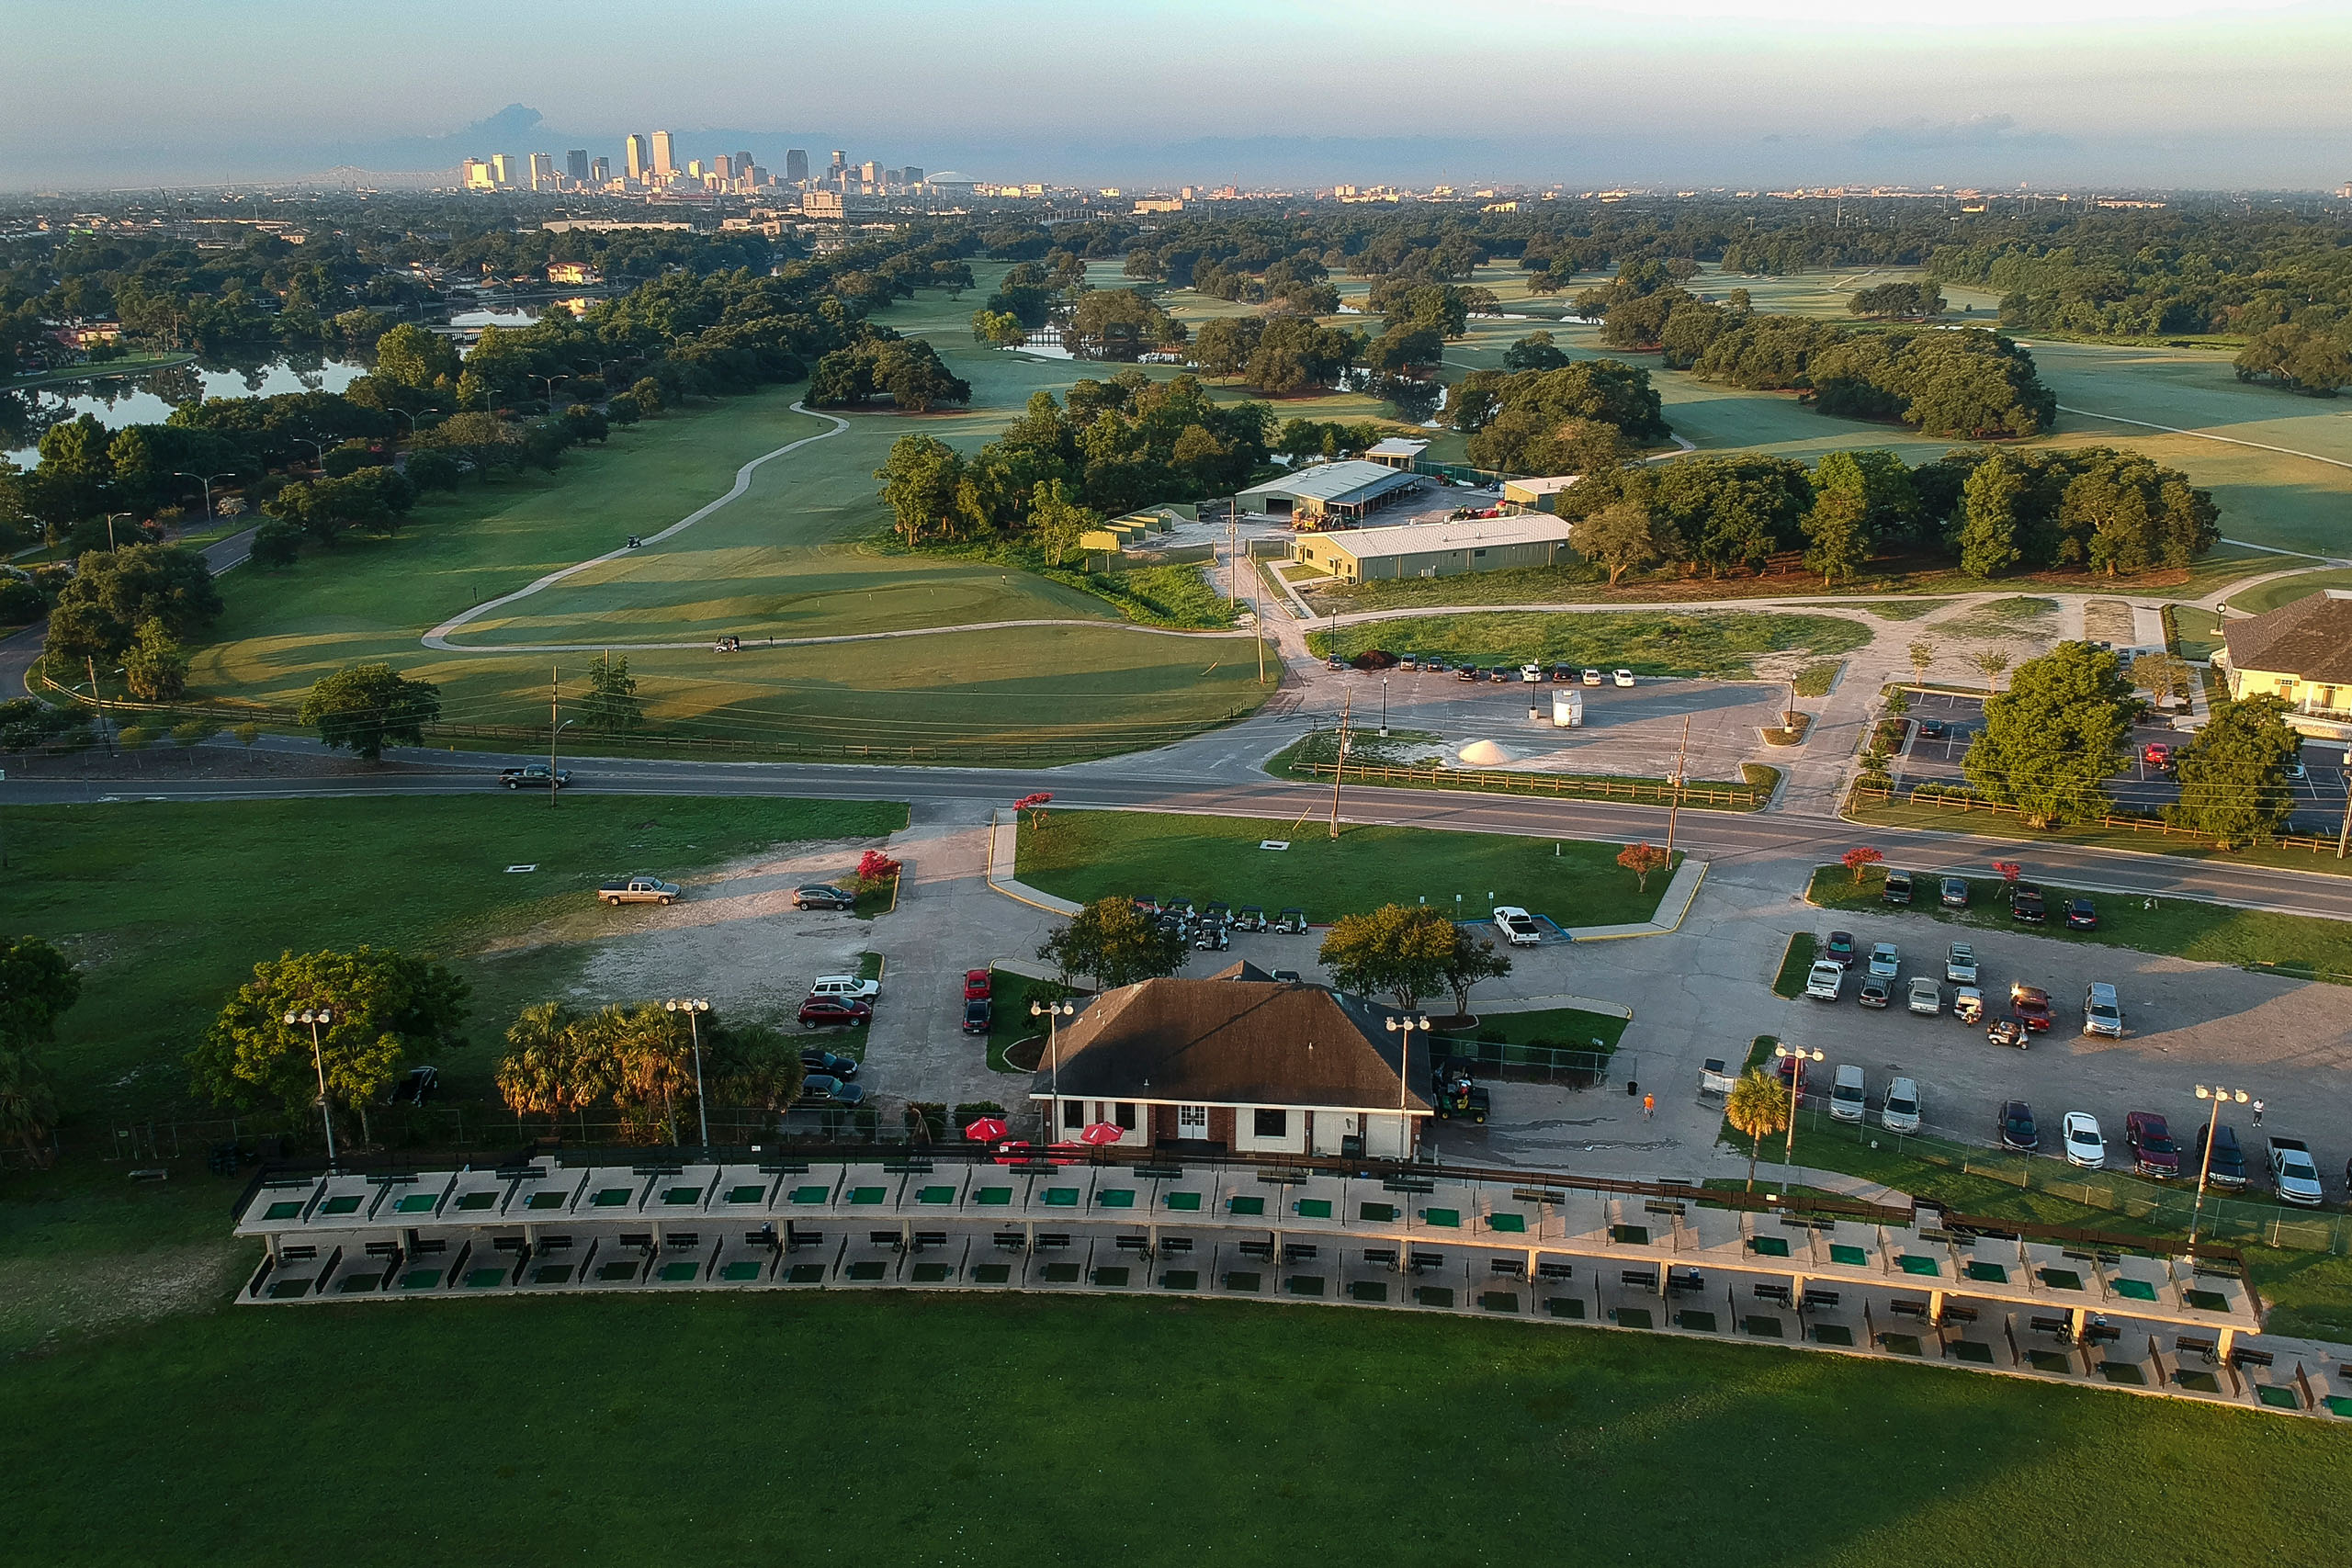 The double-decker driving range at City Park. Photo by Ryan Young